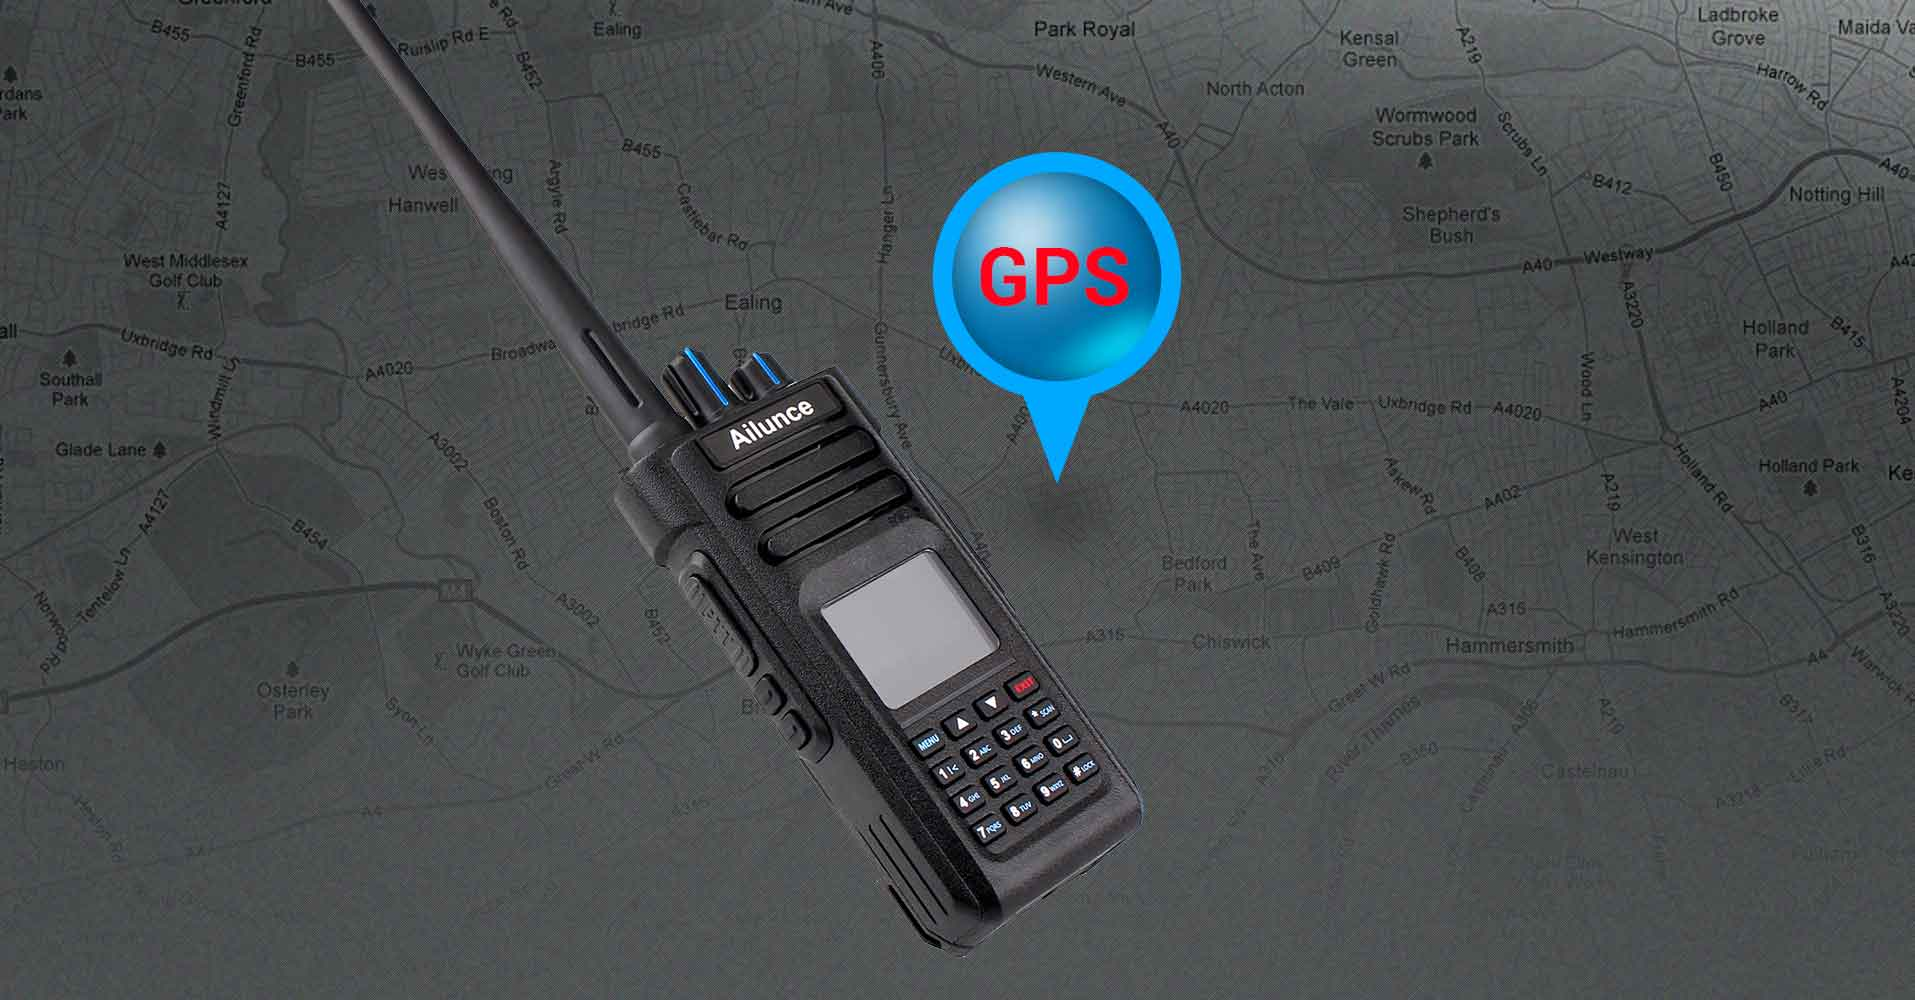 How to operate HD1 GPS function